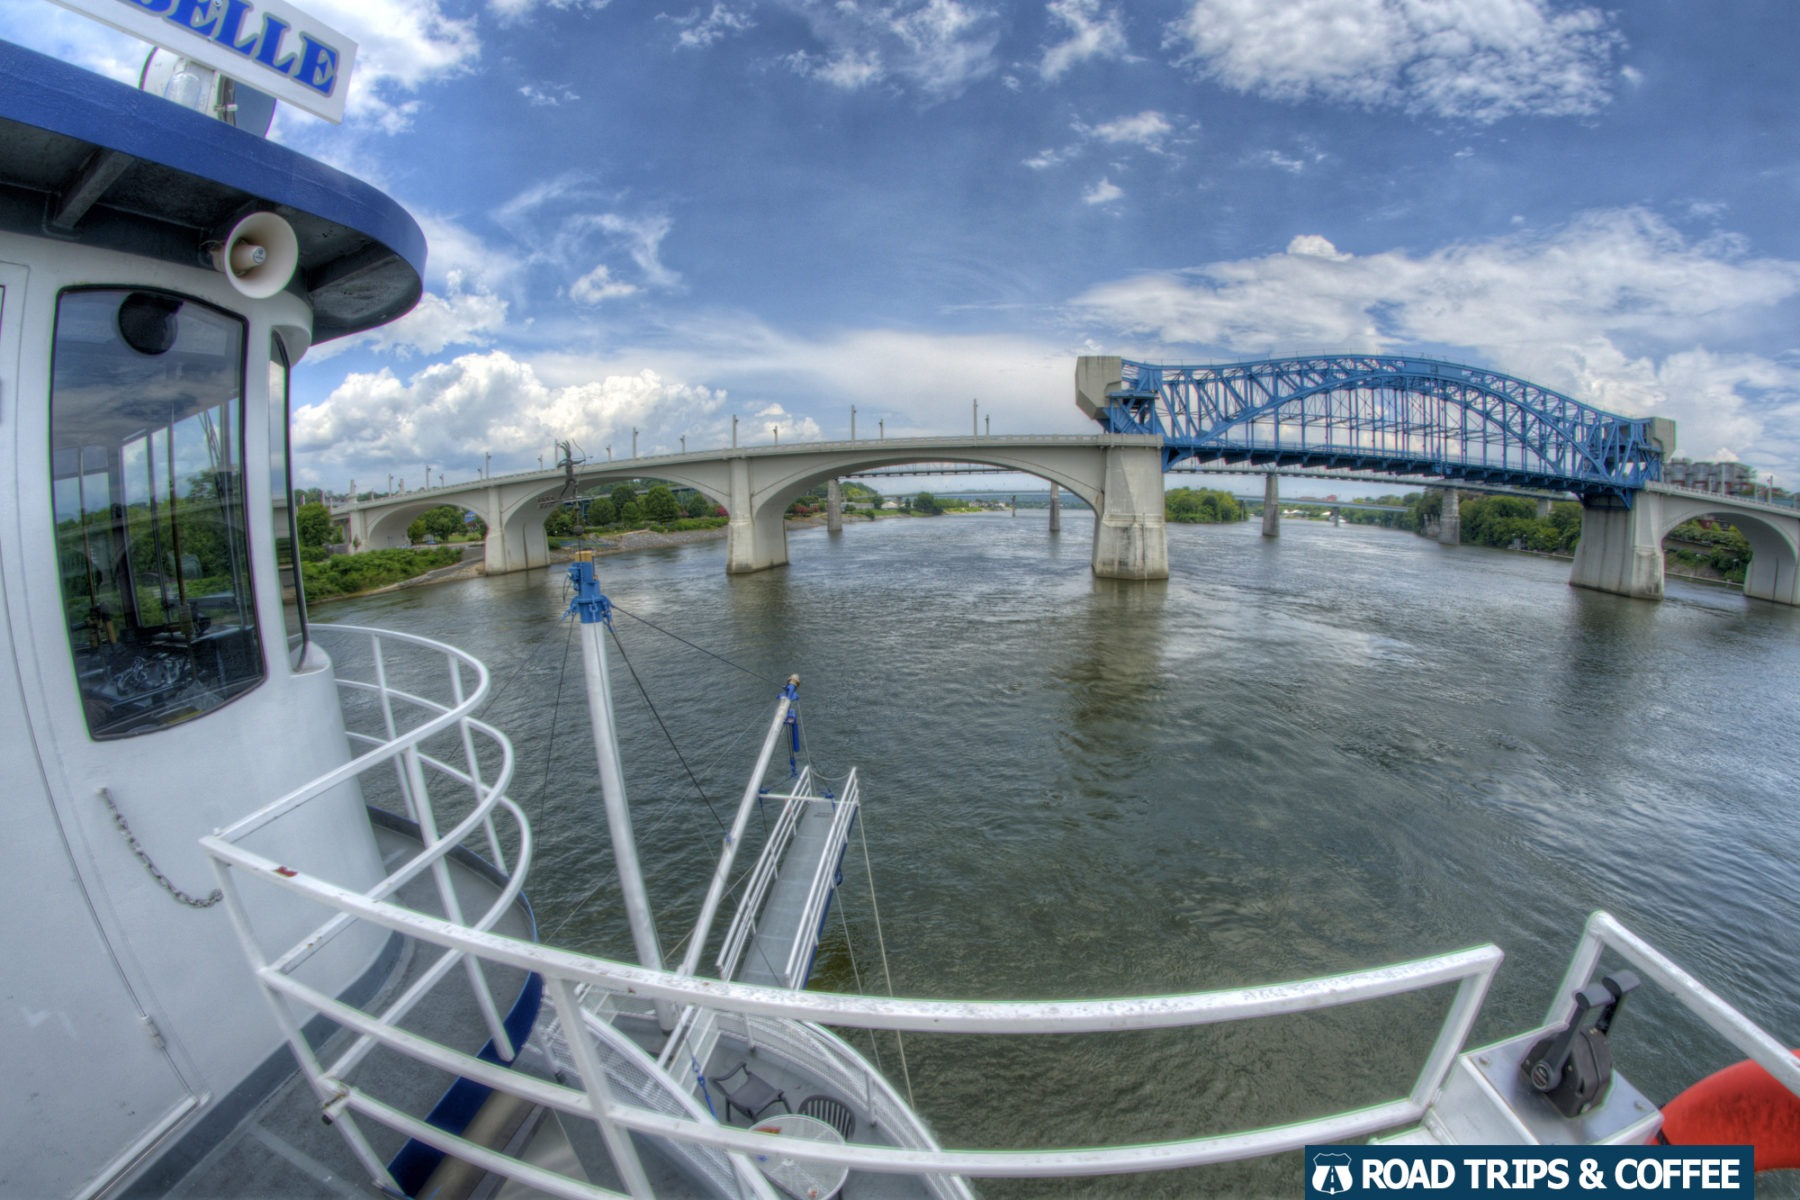 View of the bridges on the Southern Belle Riverboat during a tour on the Tennessee River in Chattanooga, Tennessee